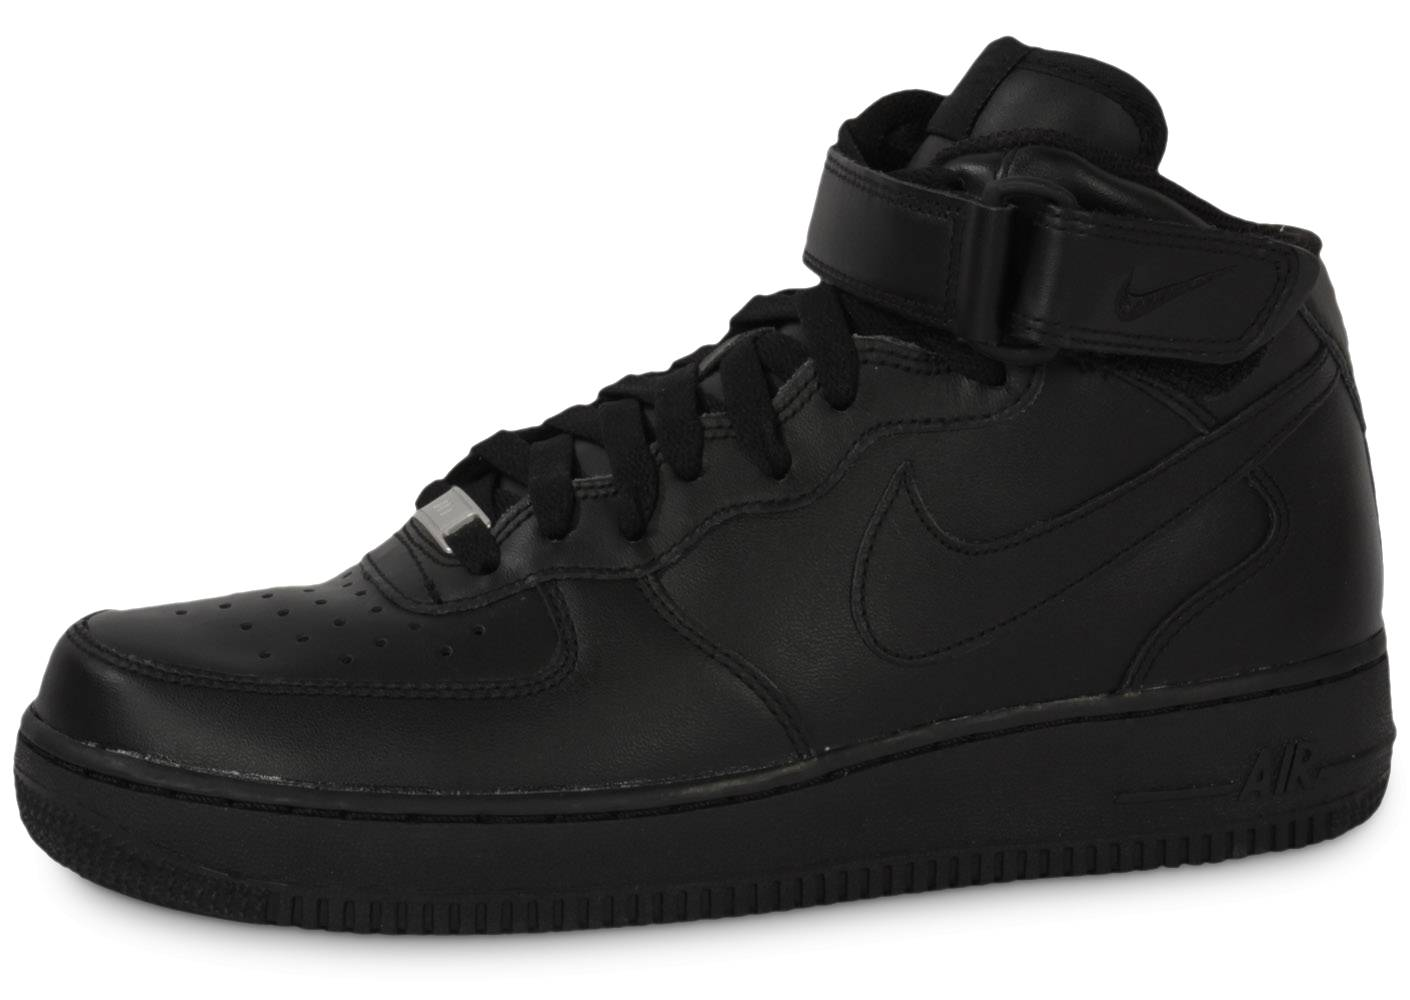 Nike Homme Air Force 1 Mid 07 Noire Baskets 40